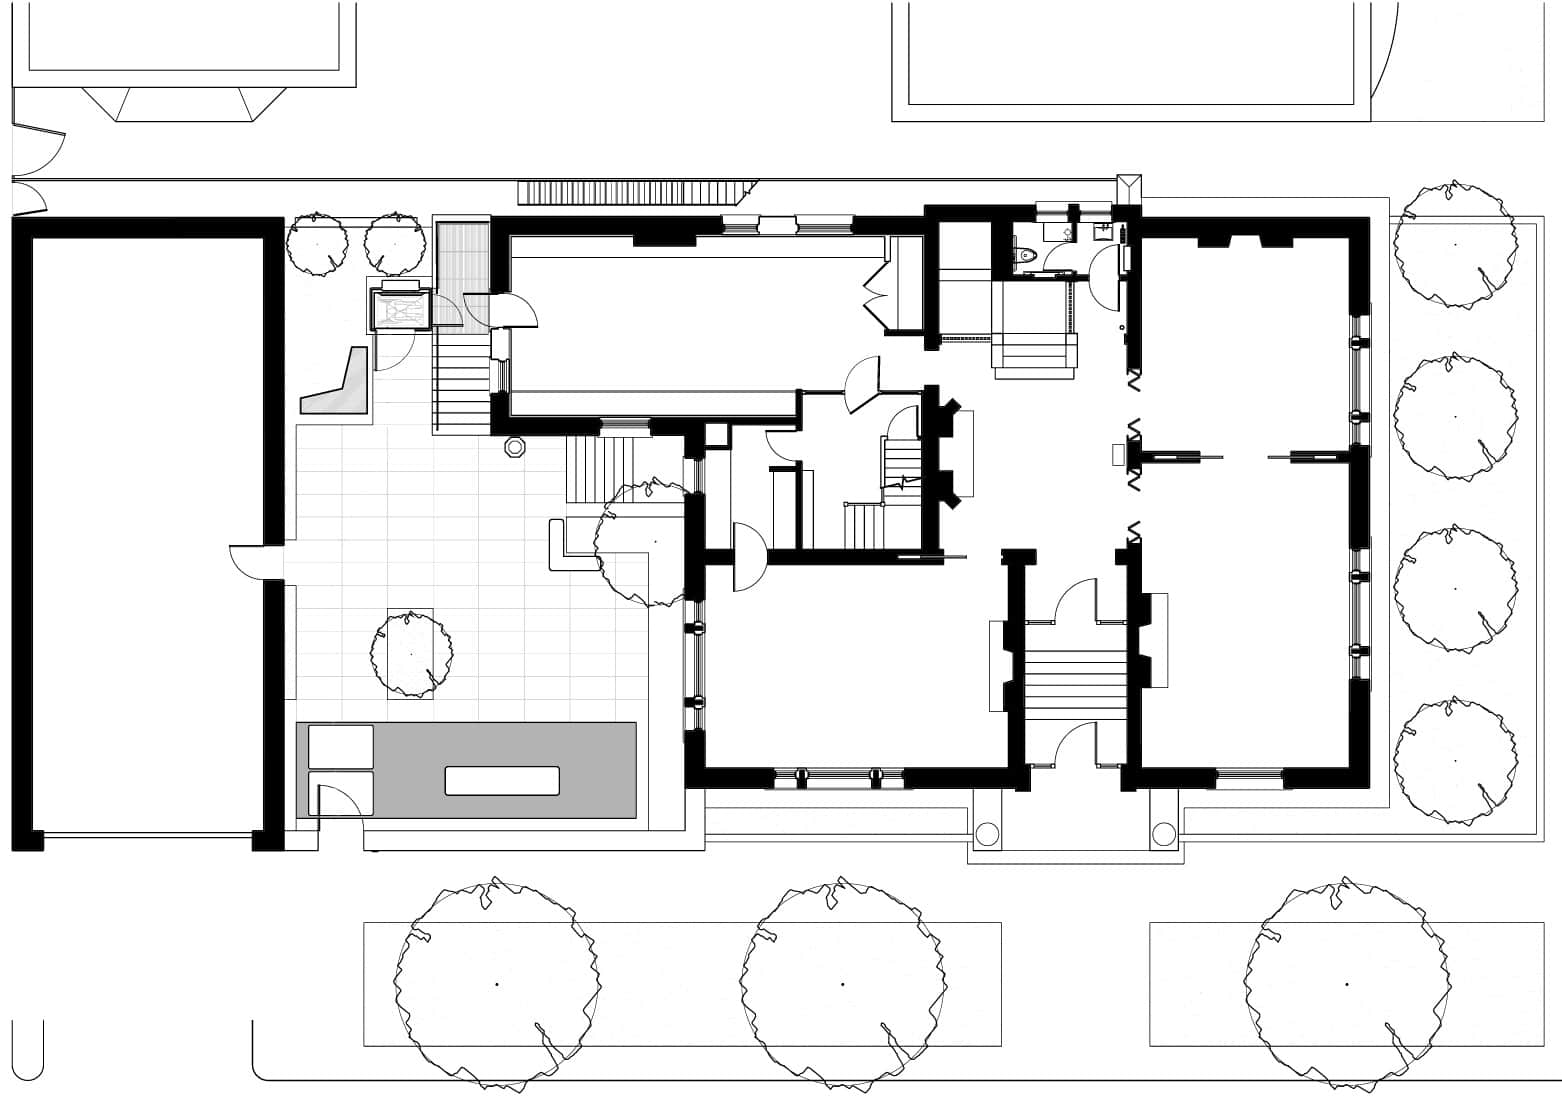 13 first floor plan